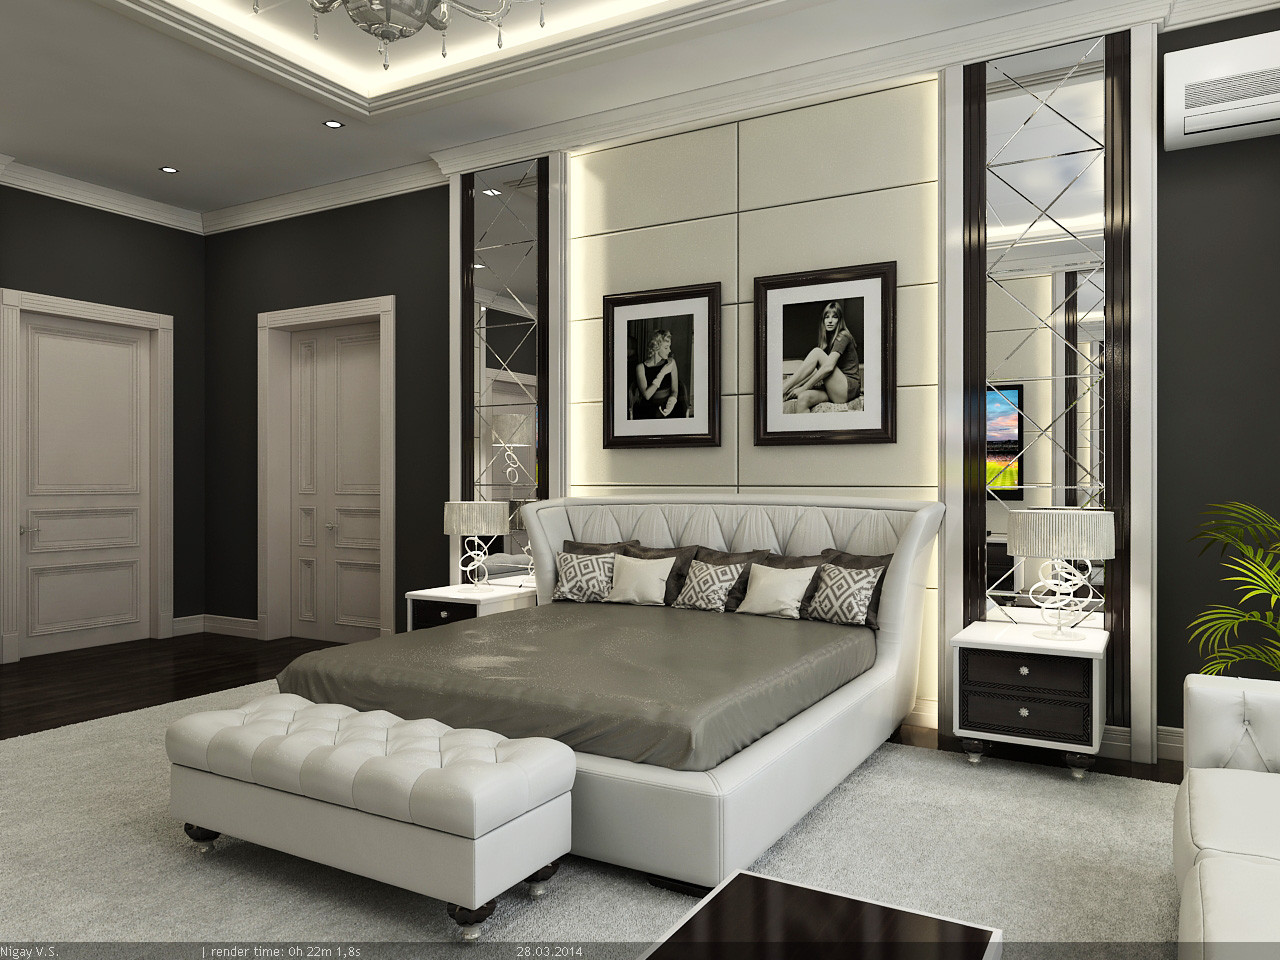 Interior master bedroom 3d model for Bedroom designs 3d model